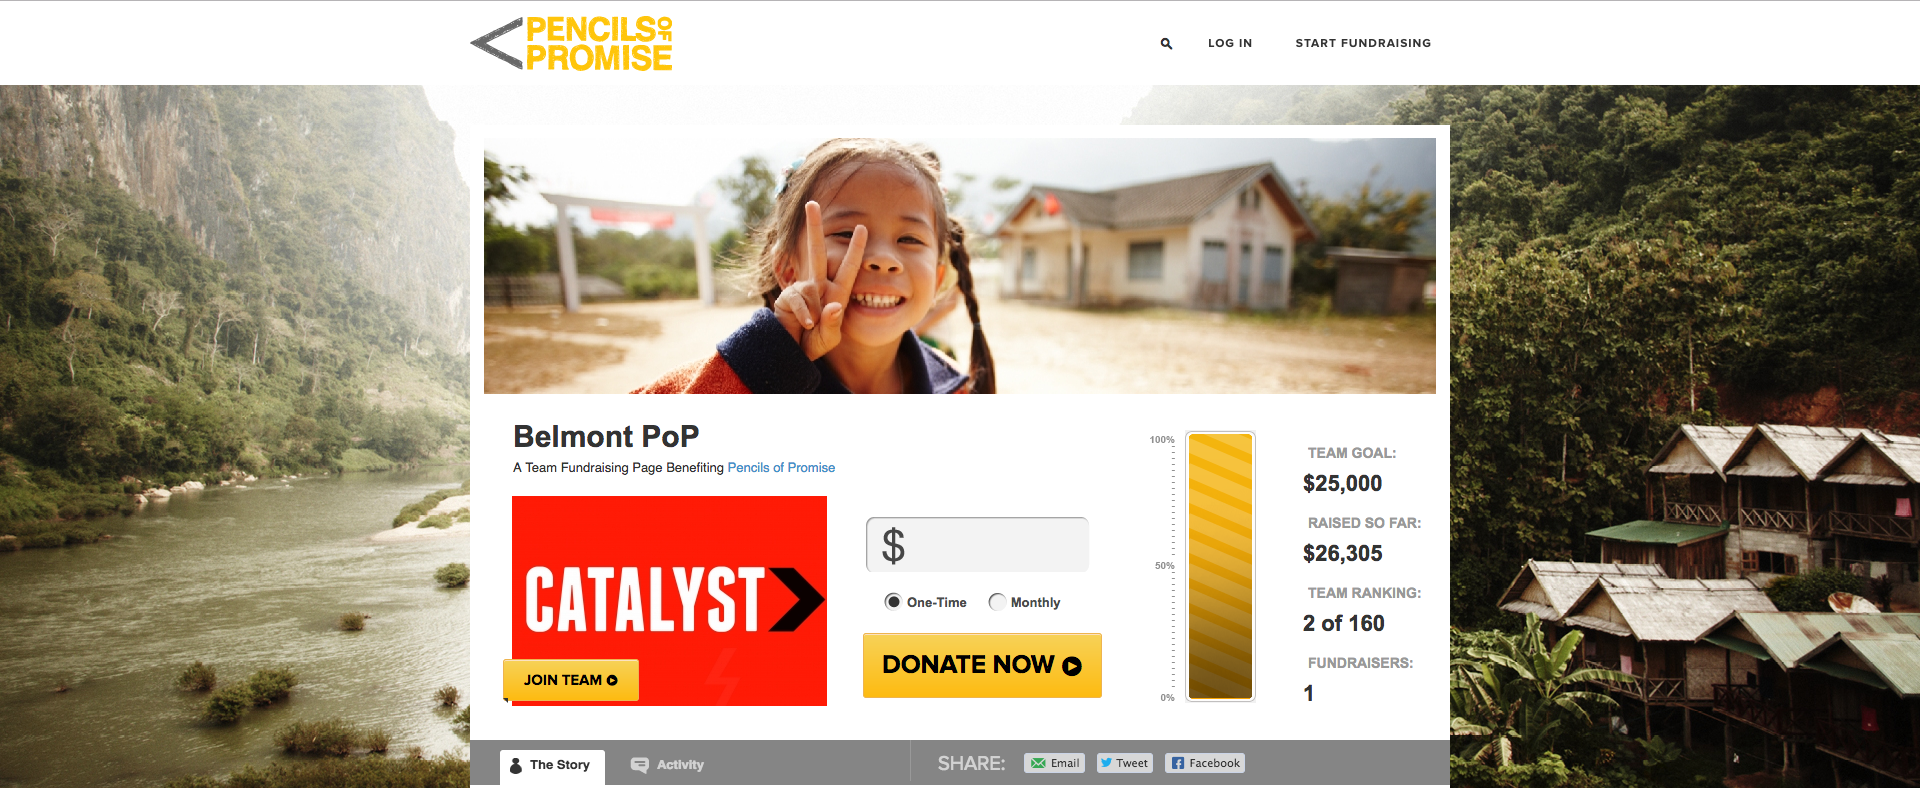 Pencils of Promise Peer-to-Peer Fundraising